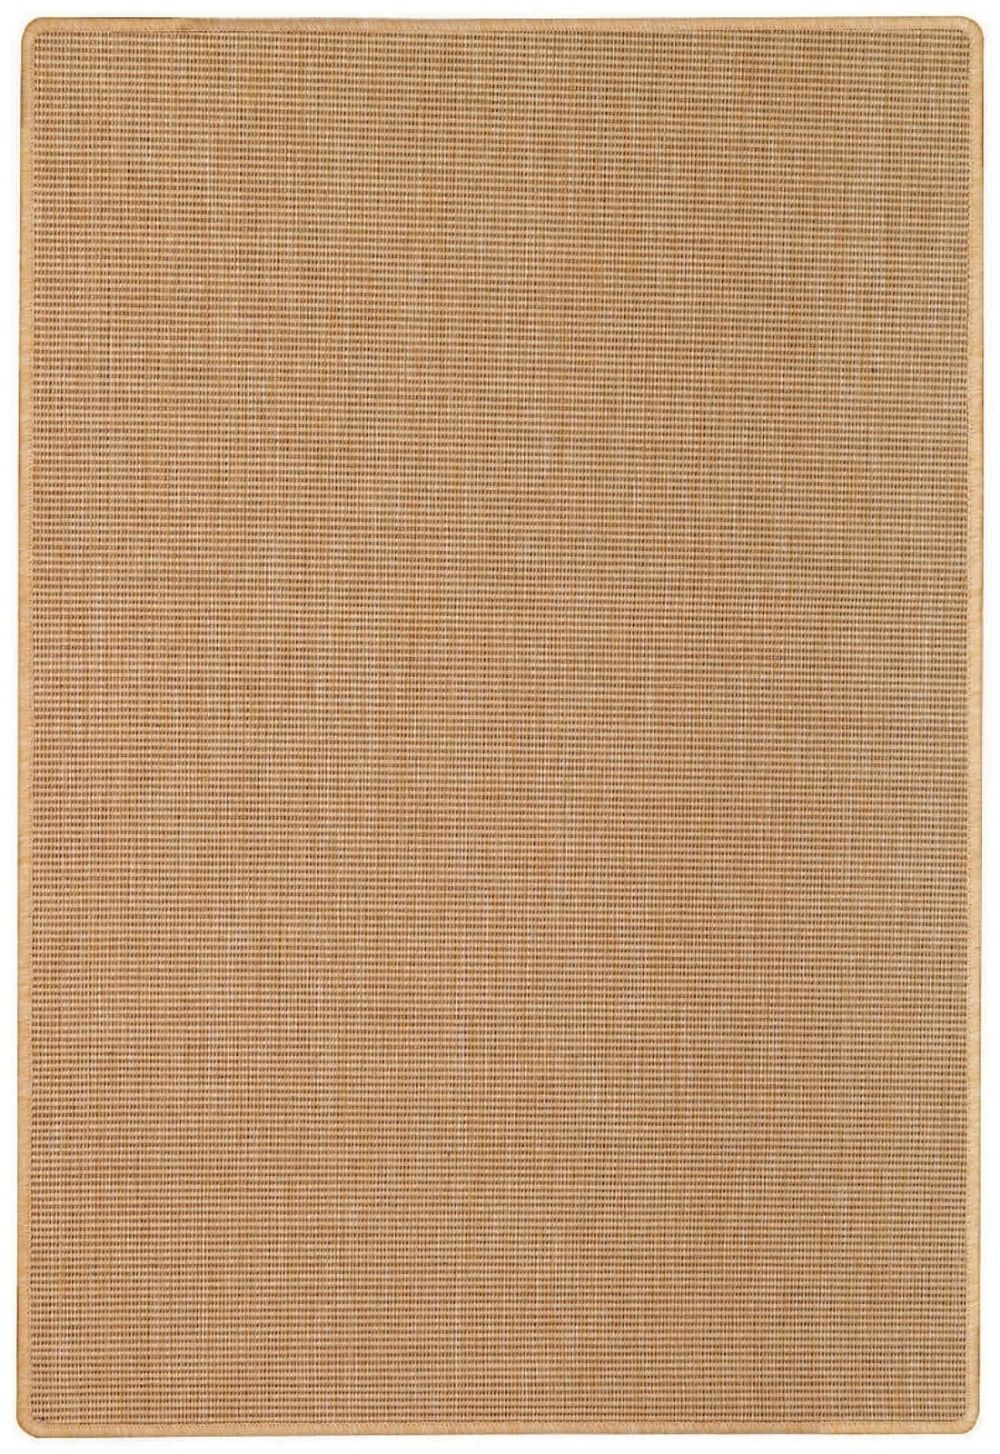 capel ridge creek contemporary area rug collection